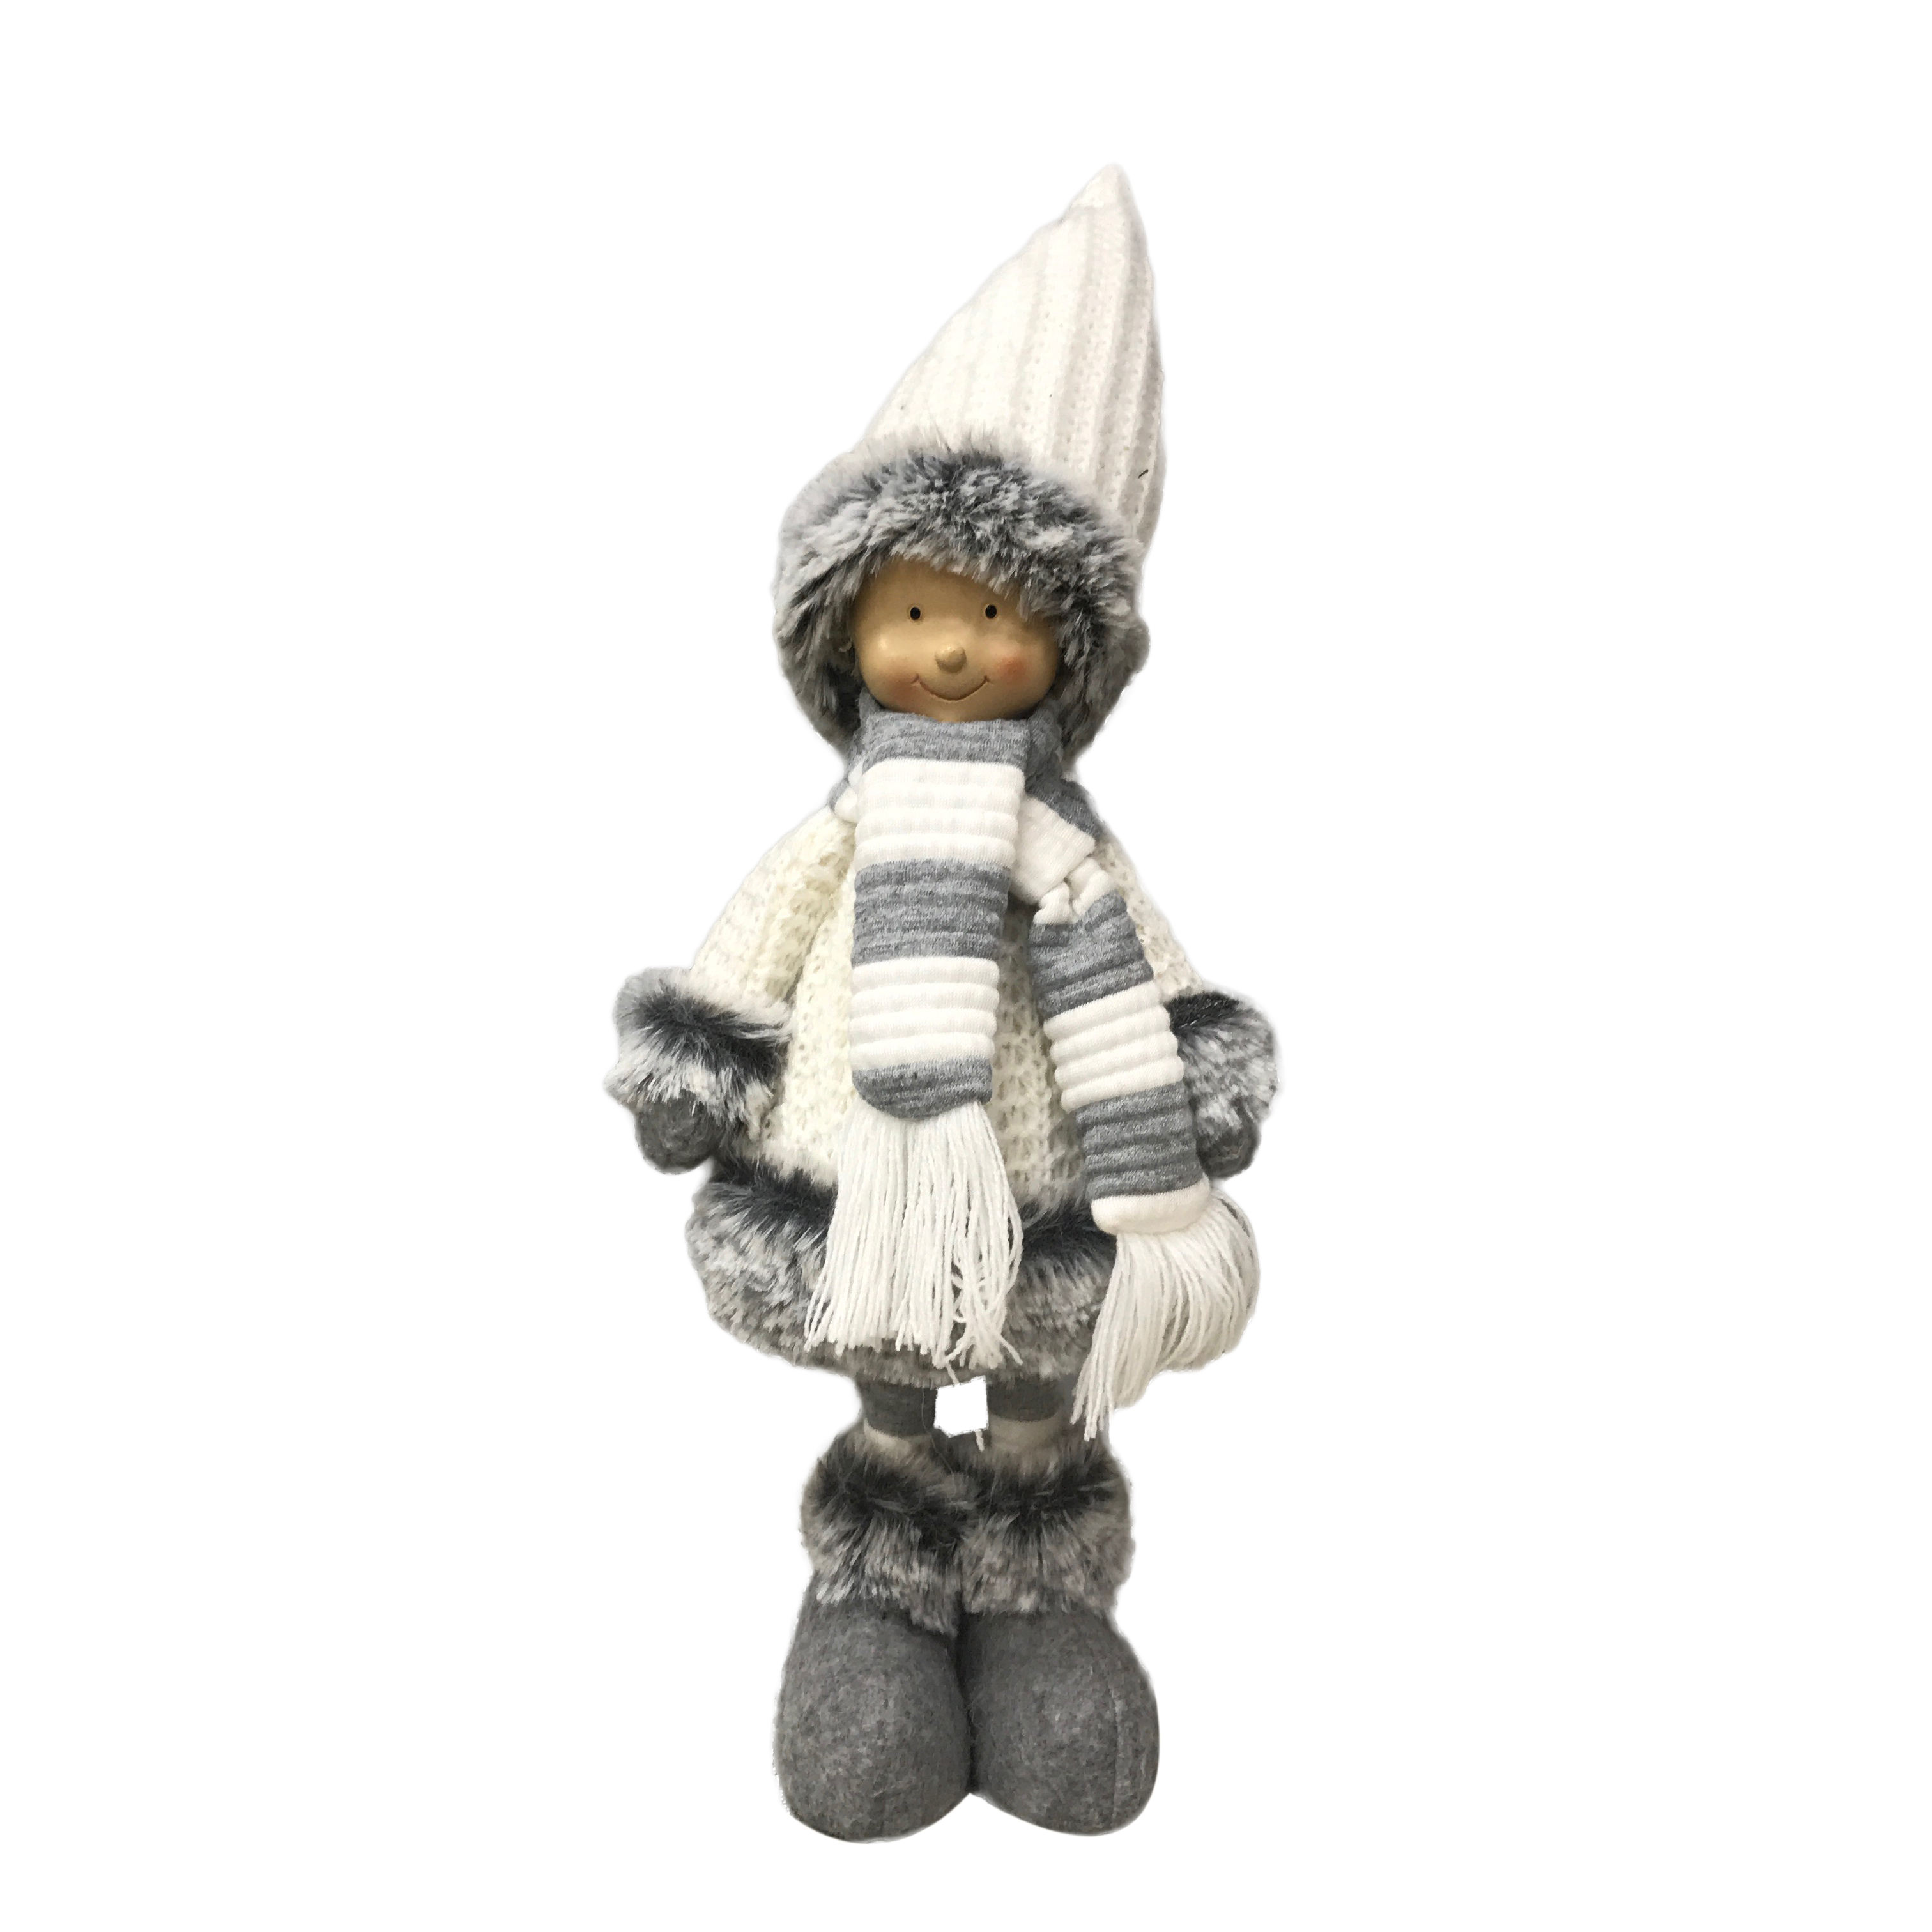 Home Ornament Christmas Knitted Fabric Dolls Standing Boy with Woolen Scarf and Hat